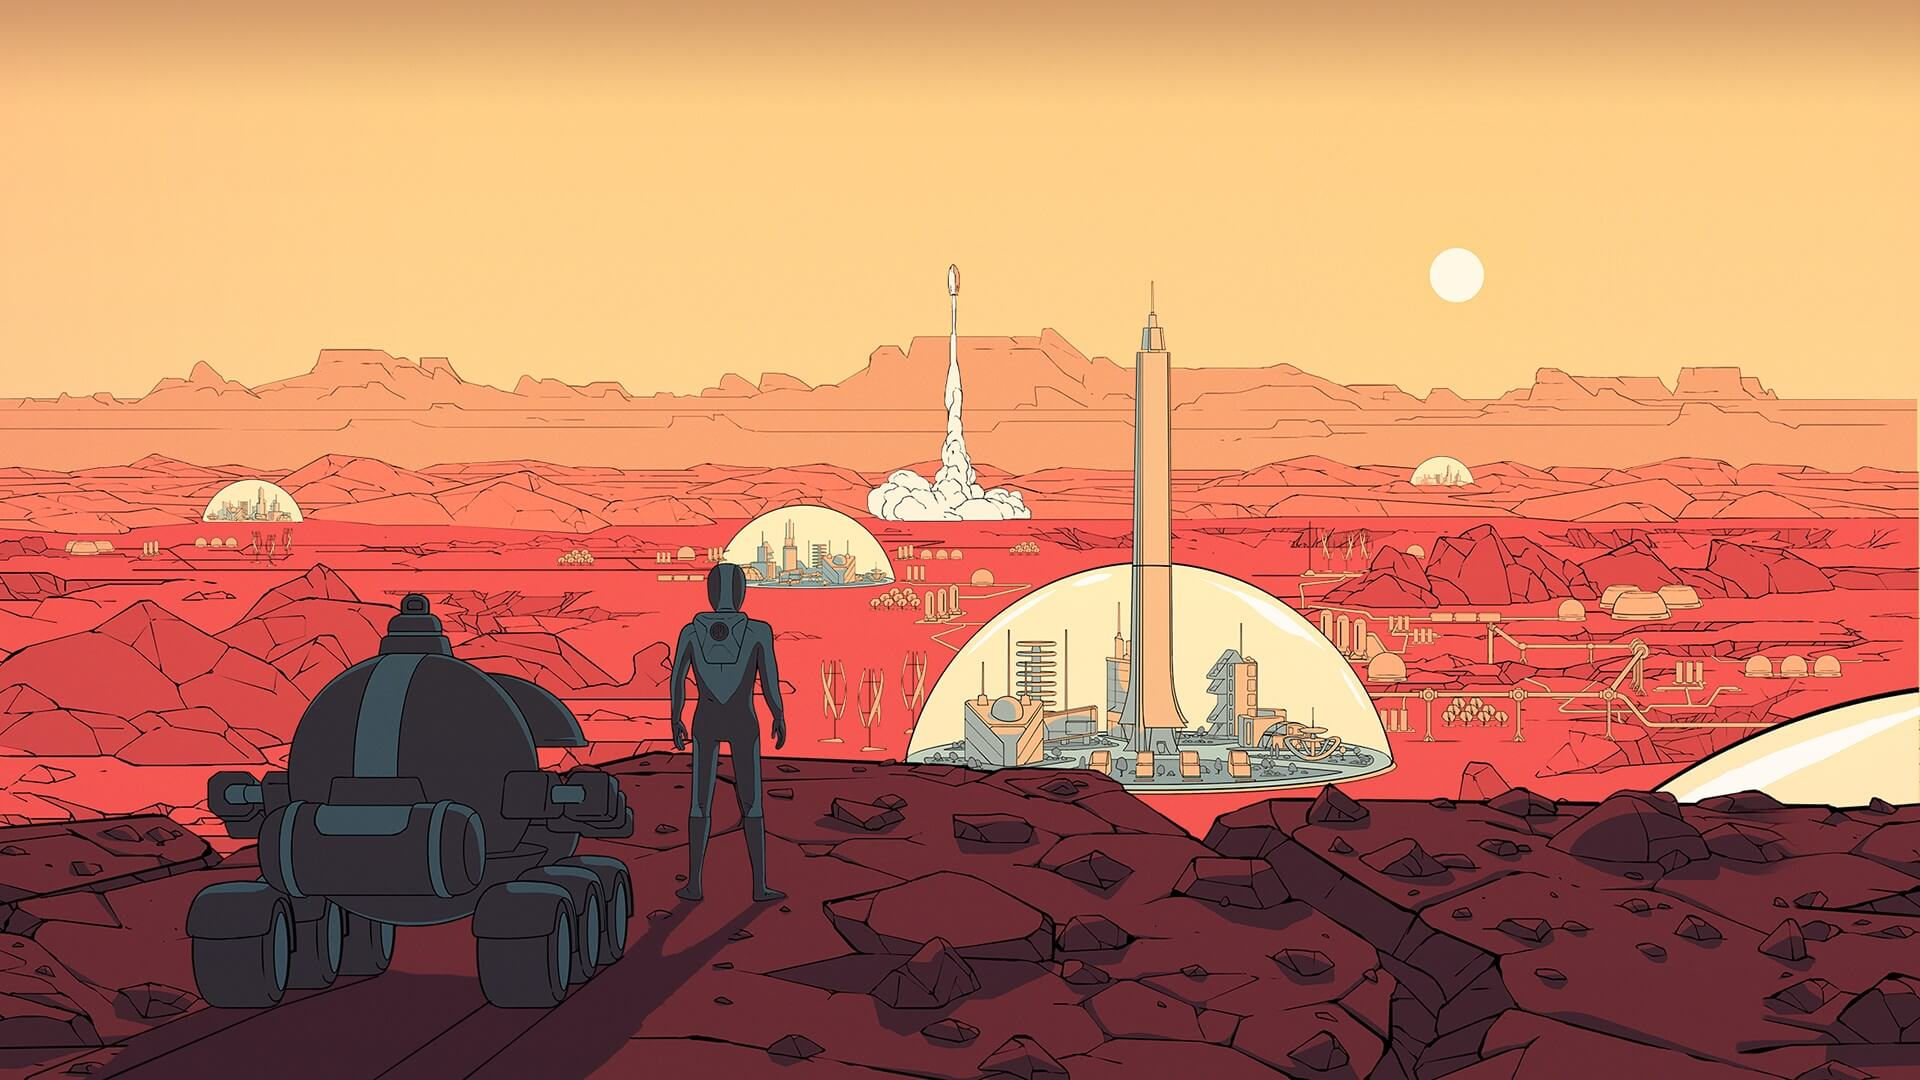 Where to go tourist on Mars?